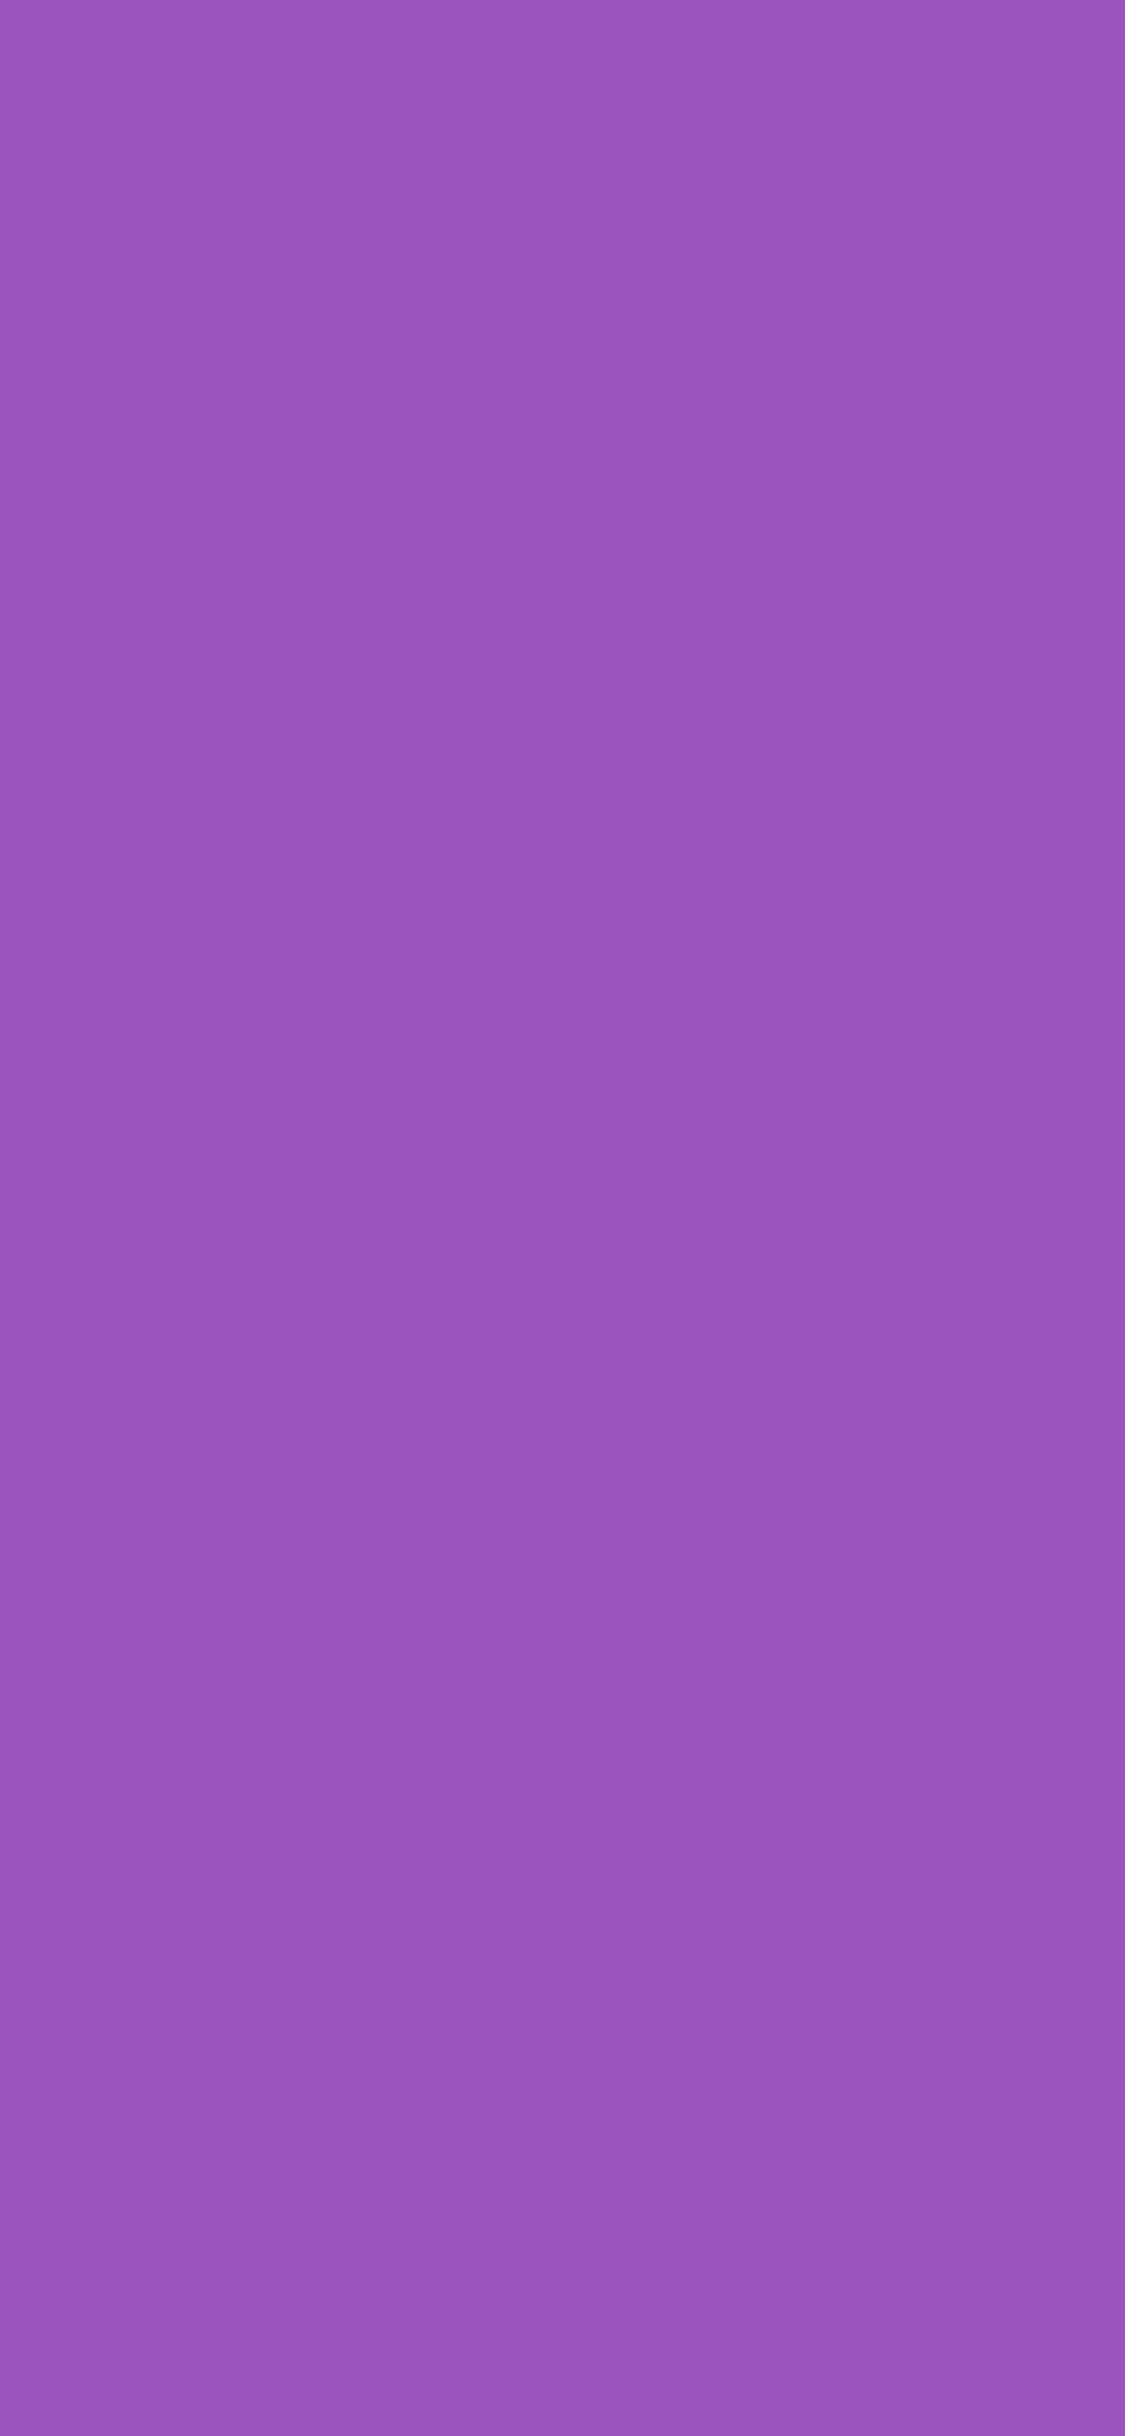 1125x2436 Deep Lilac Solid Color Background